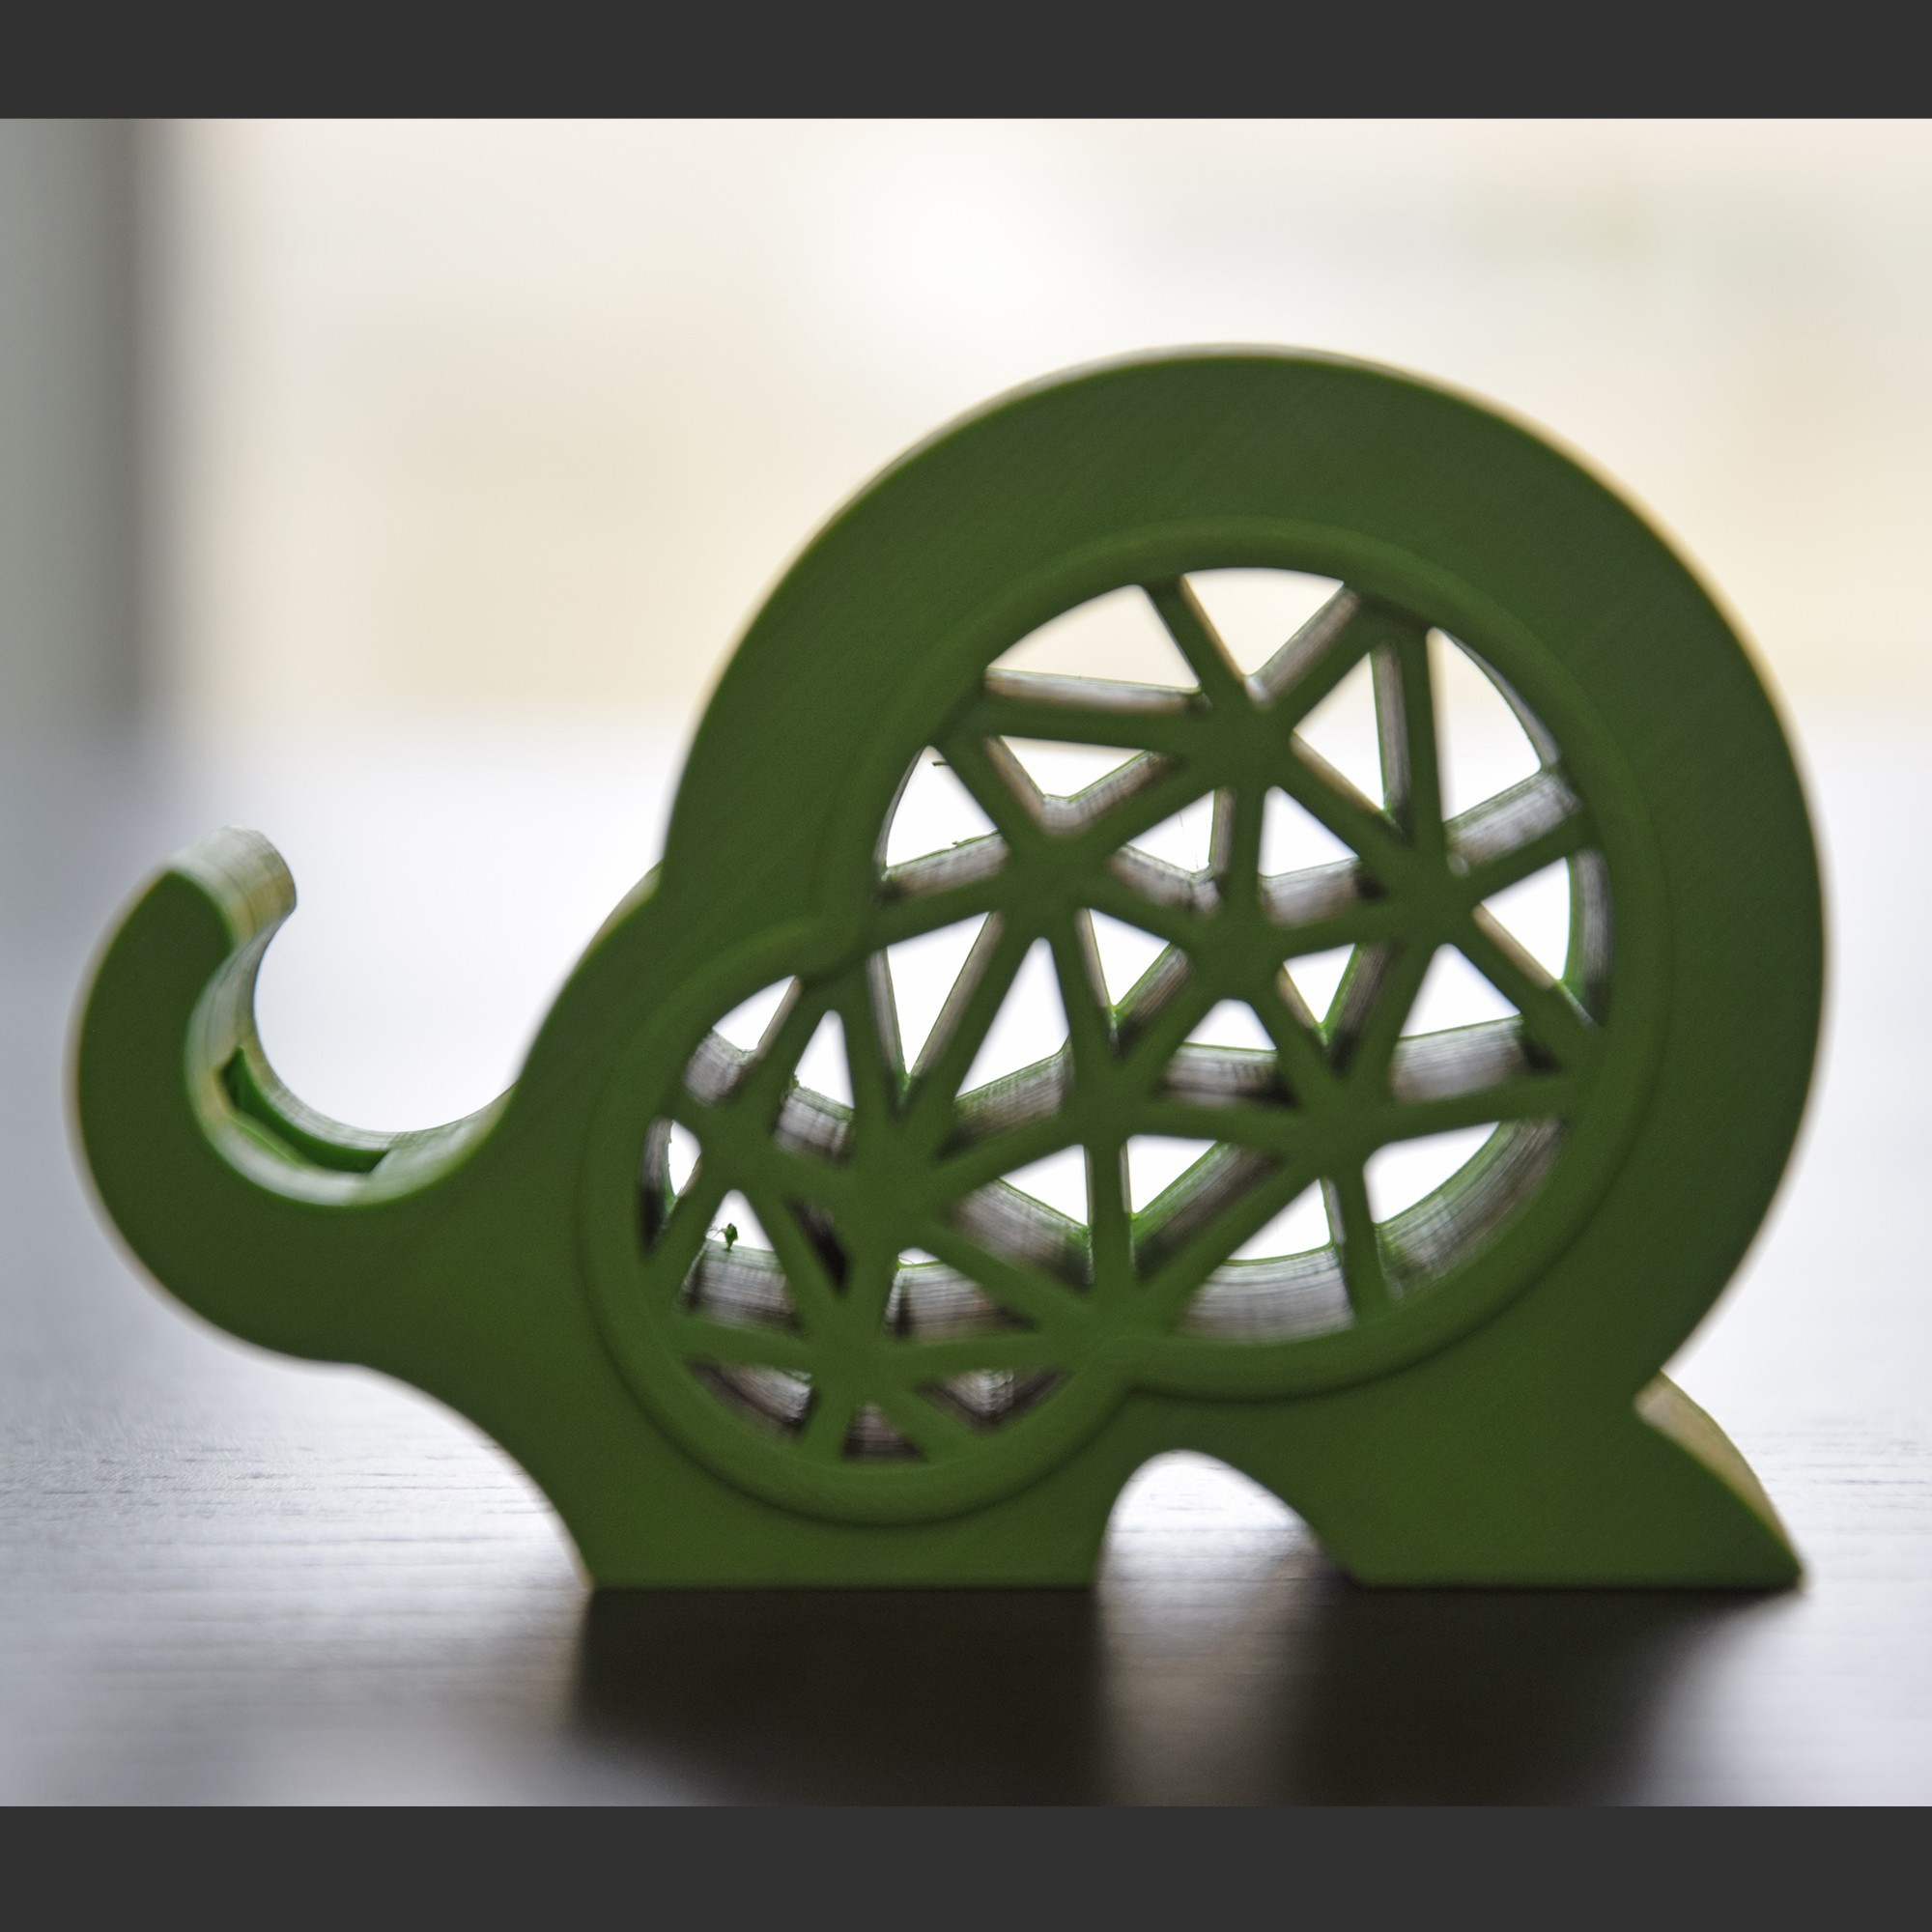 magigoocontest_mobileholder_byNawamy_06.jpg Download free STL file Magigoo mobile-holder • Template to 3D print, Nawamy